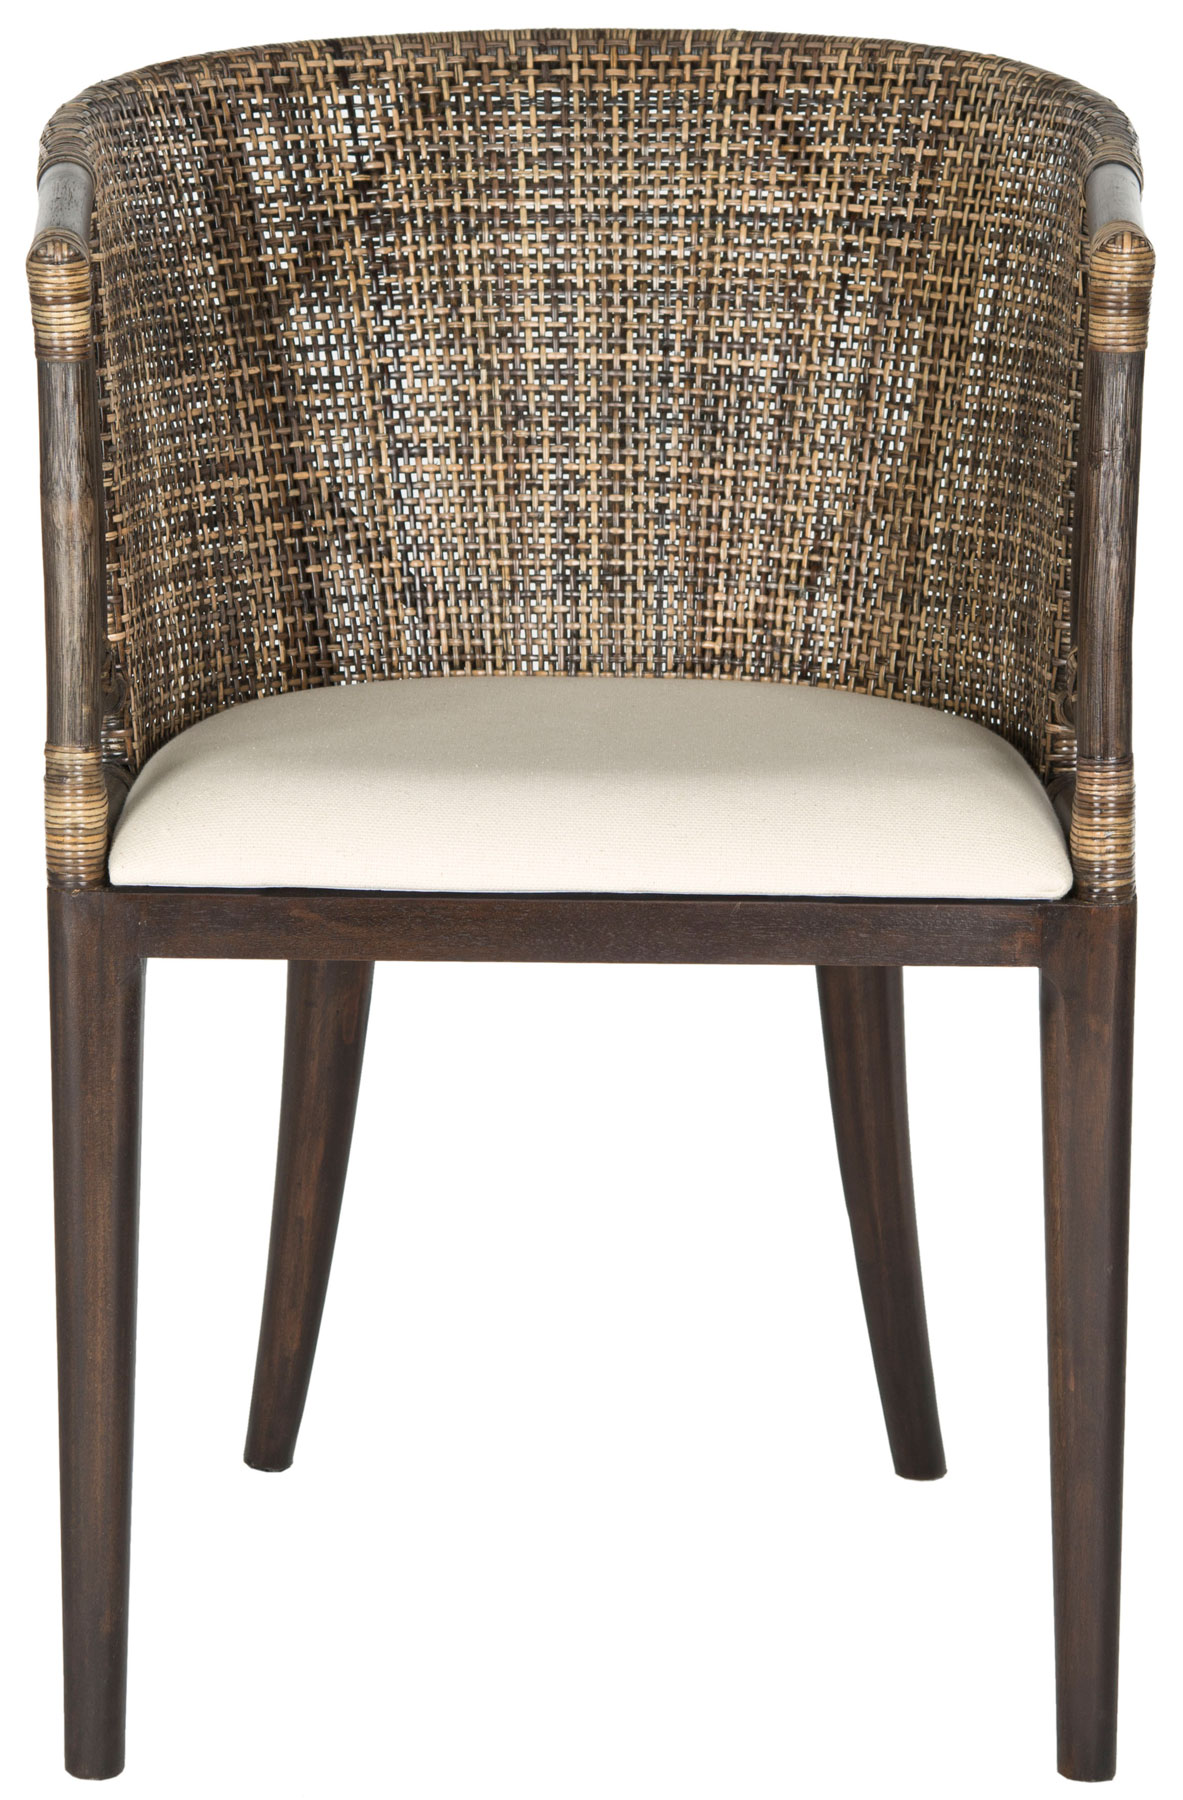 wood linen flared button bean upholstery conical living room multicolor fascinating accent design shaped rolled back woven polyester fabric tufted bohemian dark seat yellow espresso fetching with brown style size captivating arms modern full tables legs citrine chair of chairs deep furniture